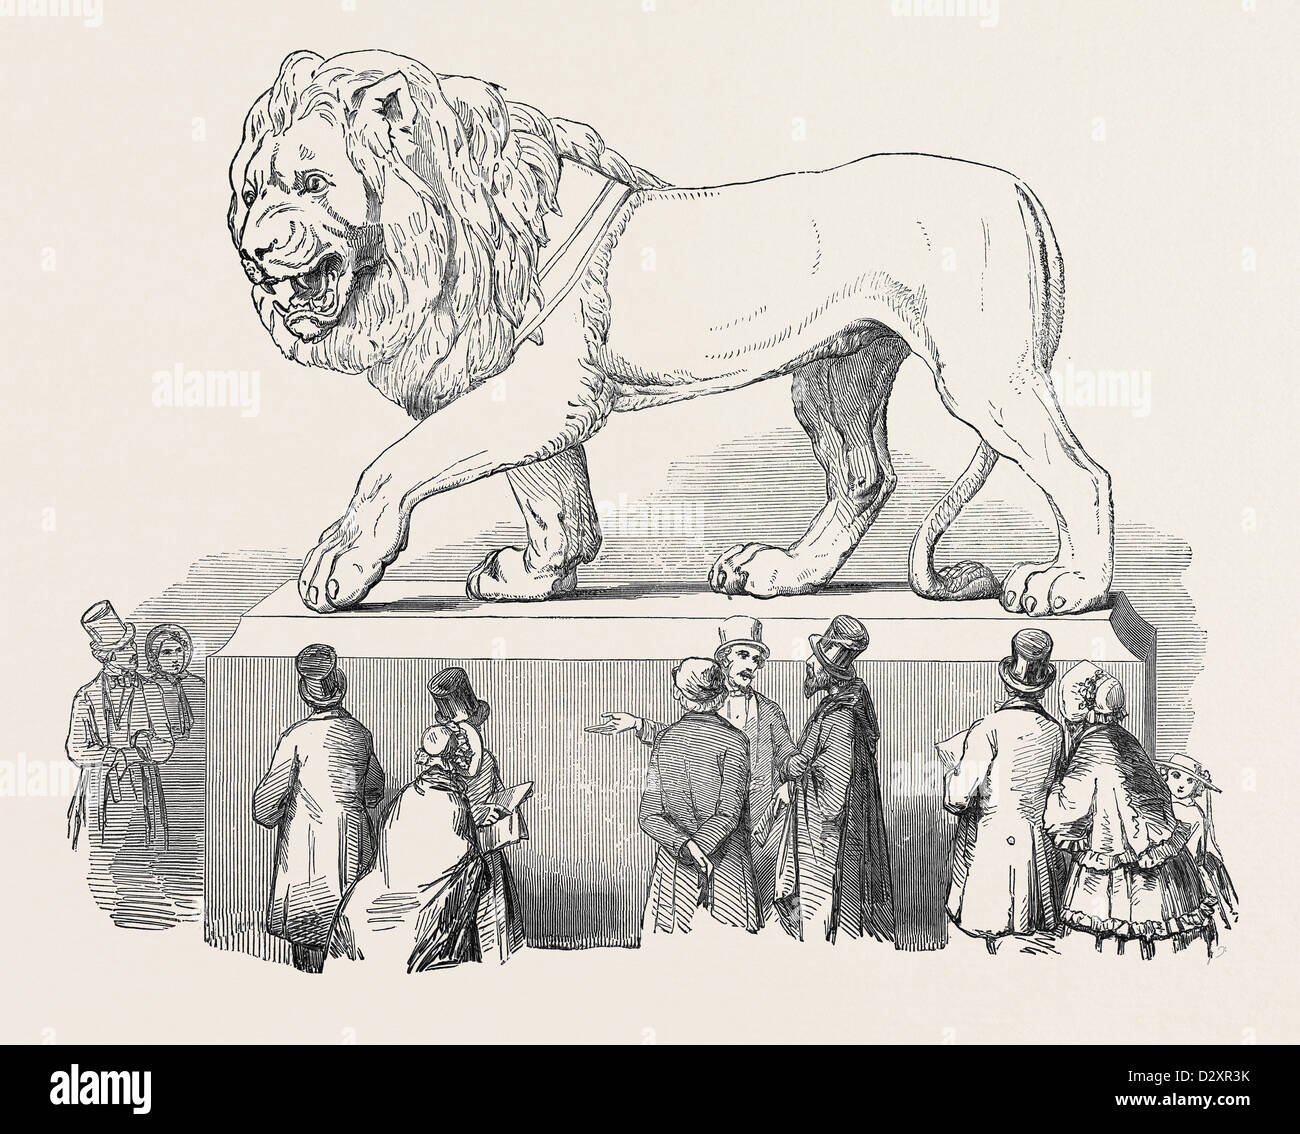 COLOSSAL BAVARIAN LION, THE GREAT EXHIBITION - Stock Image